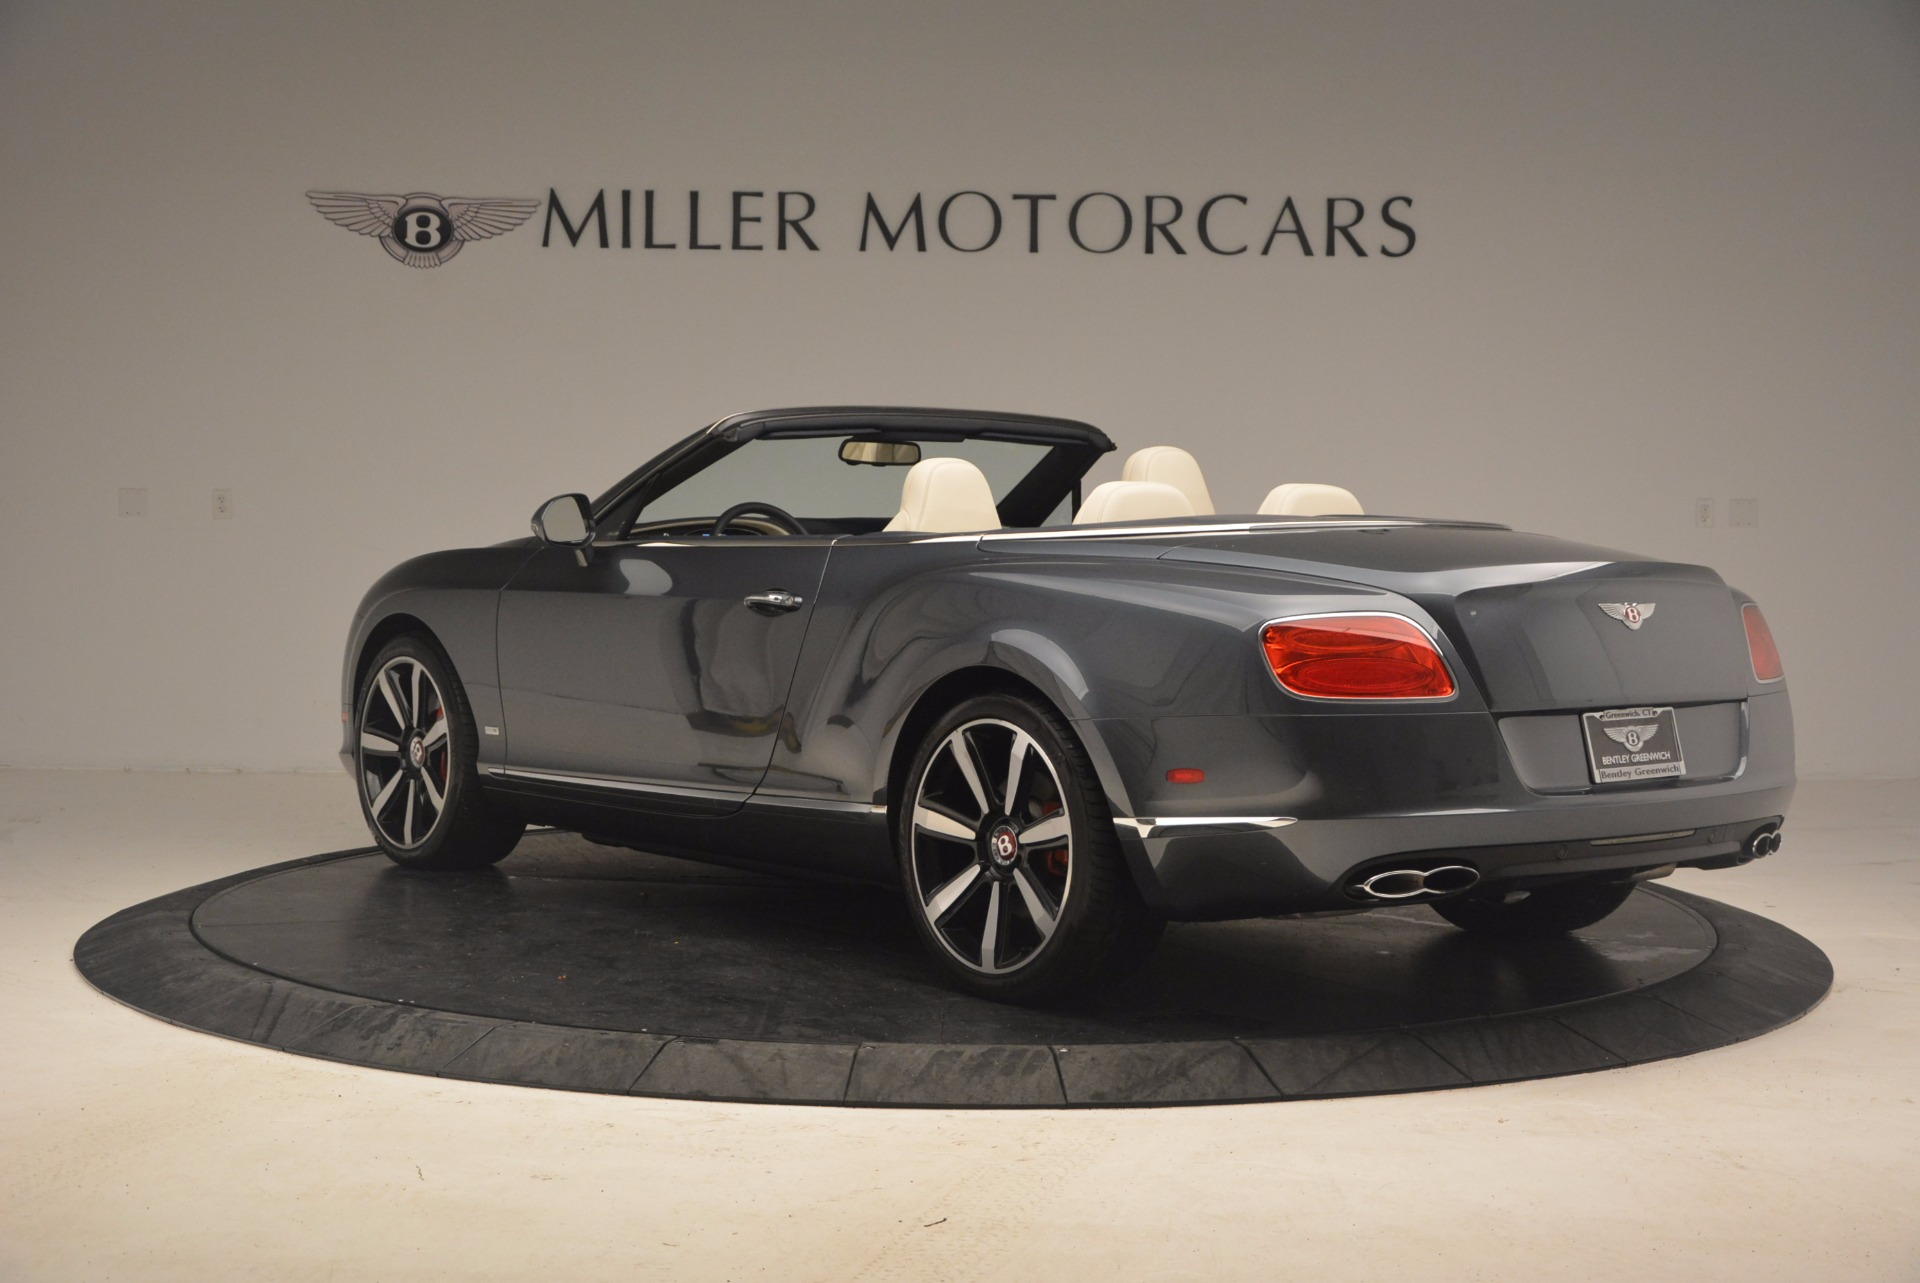 Used 2013 Bentley Continental GT V8 Le Mans Edition, 1 of 48 For Sale In Greenwich, CT 1288_p4